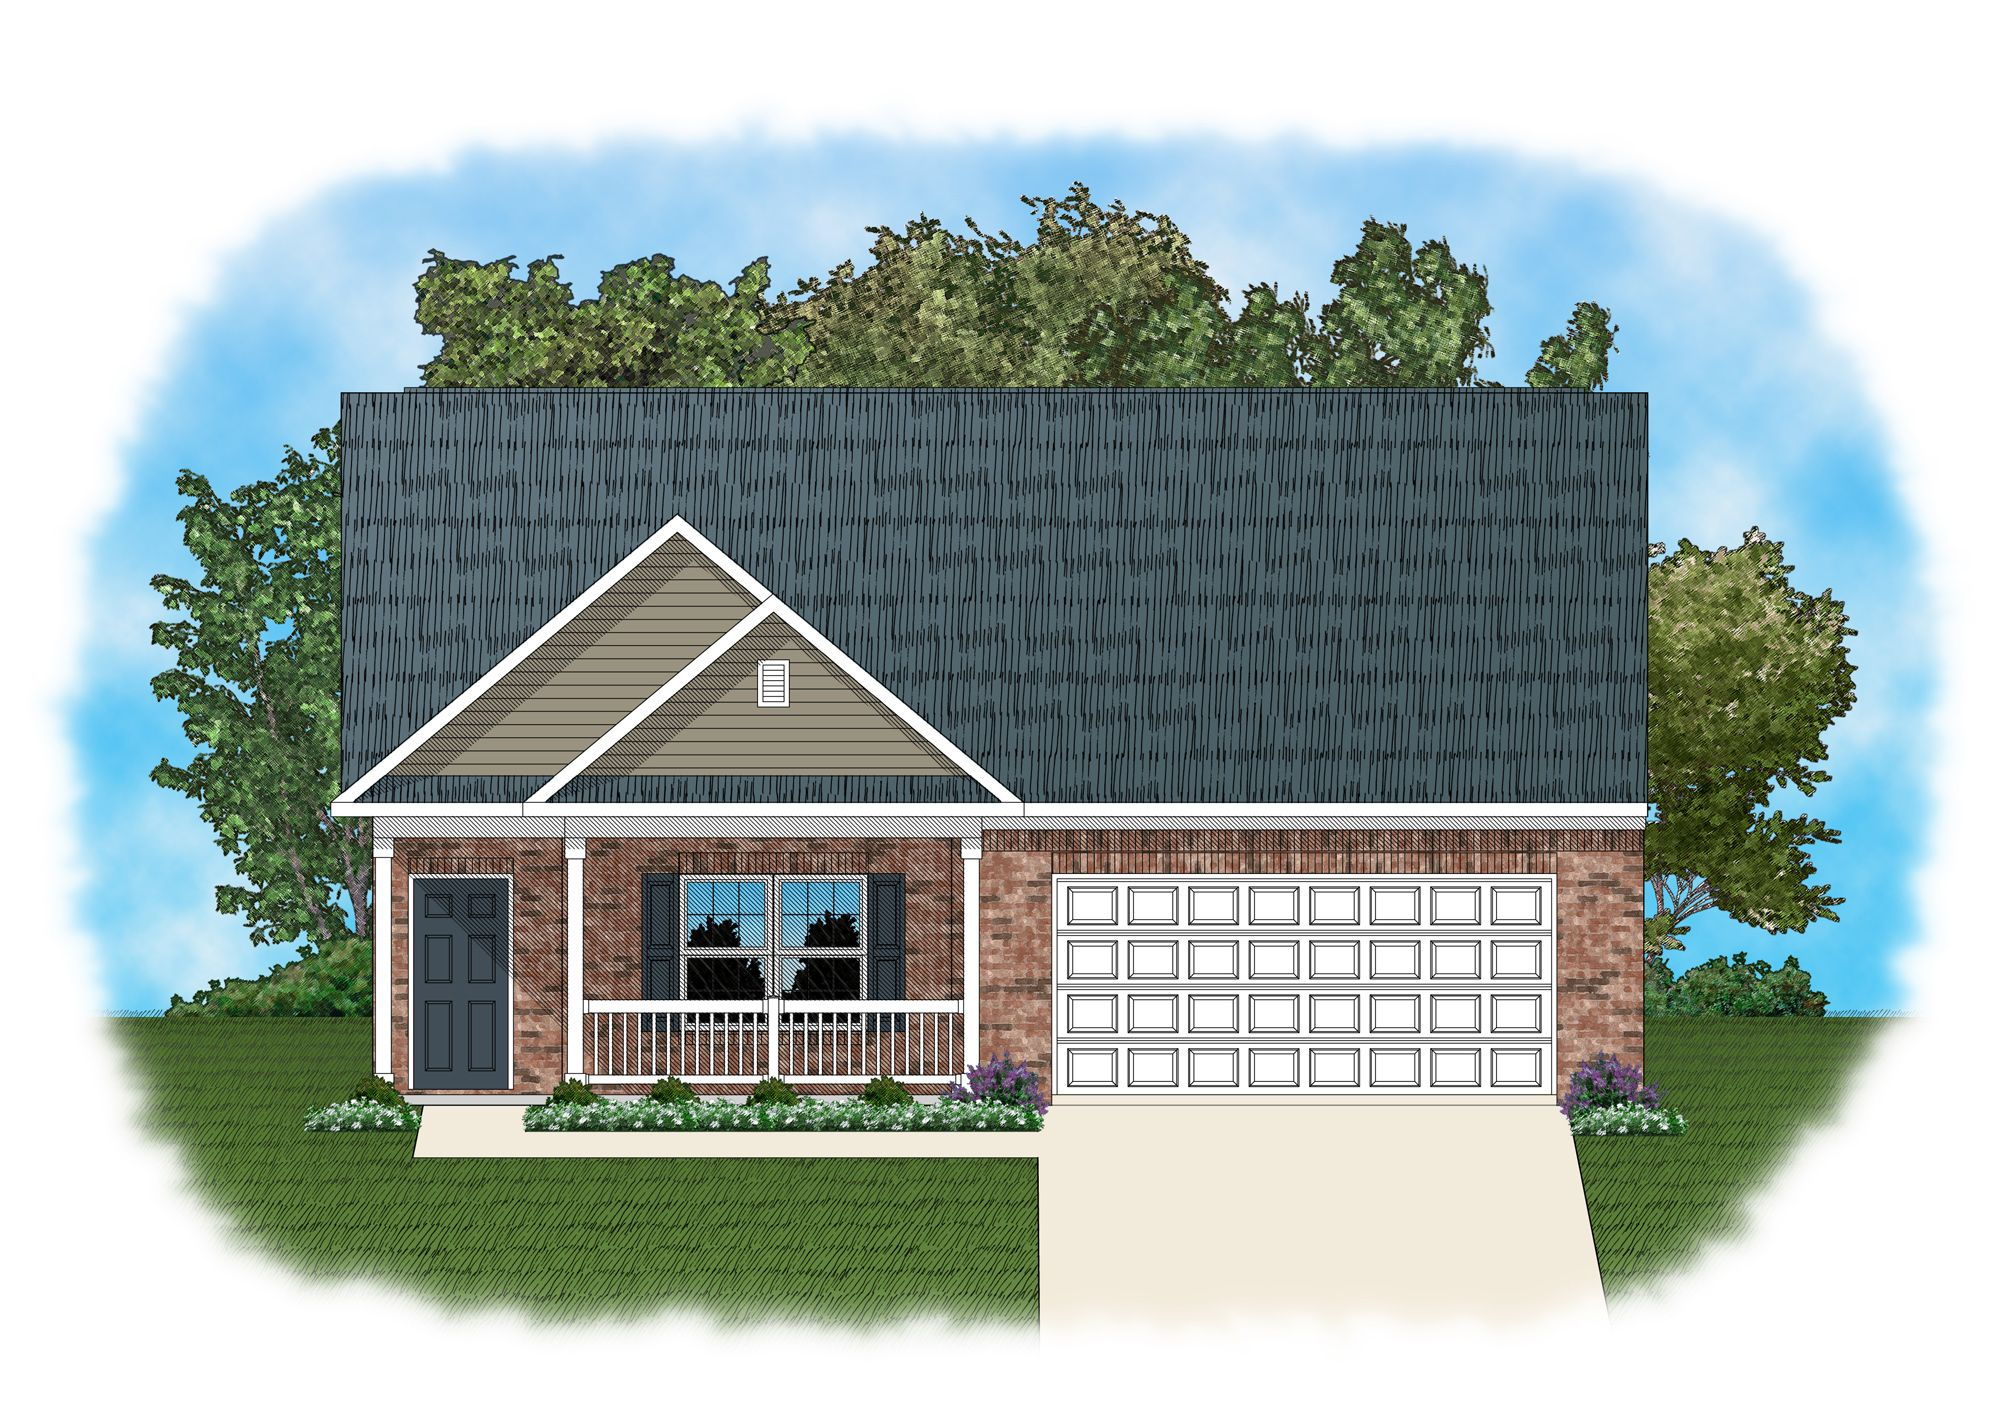 Meadowlark Lakes by Westport Homes of Indianapolis